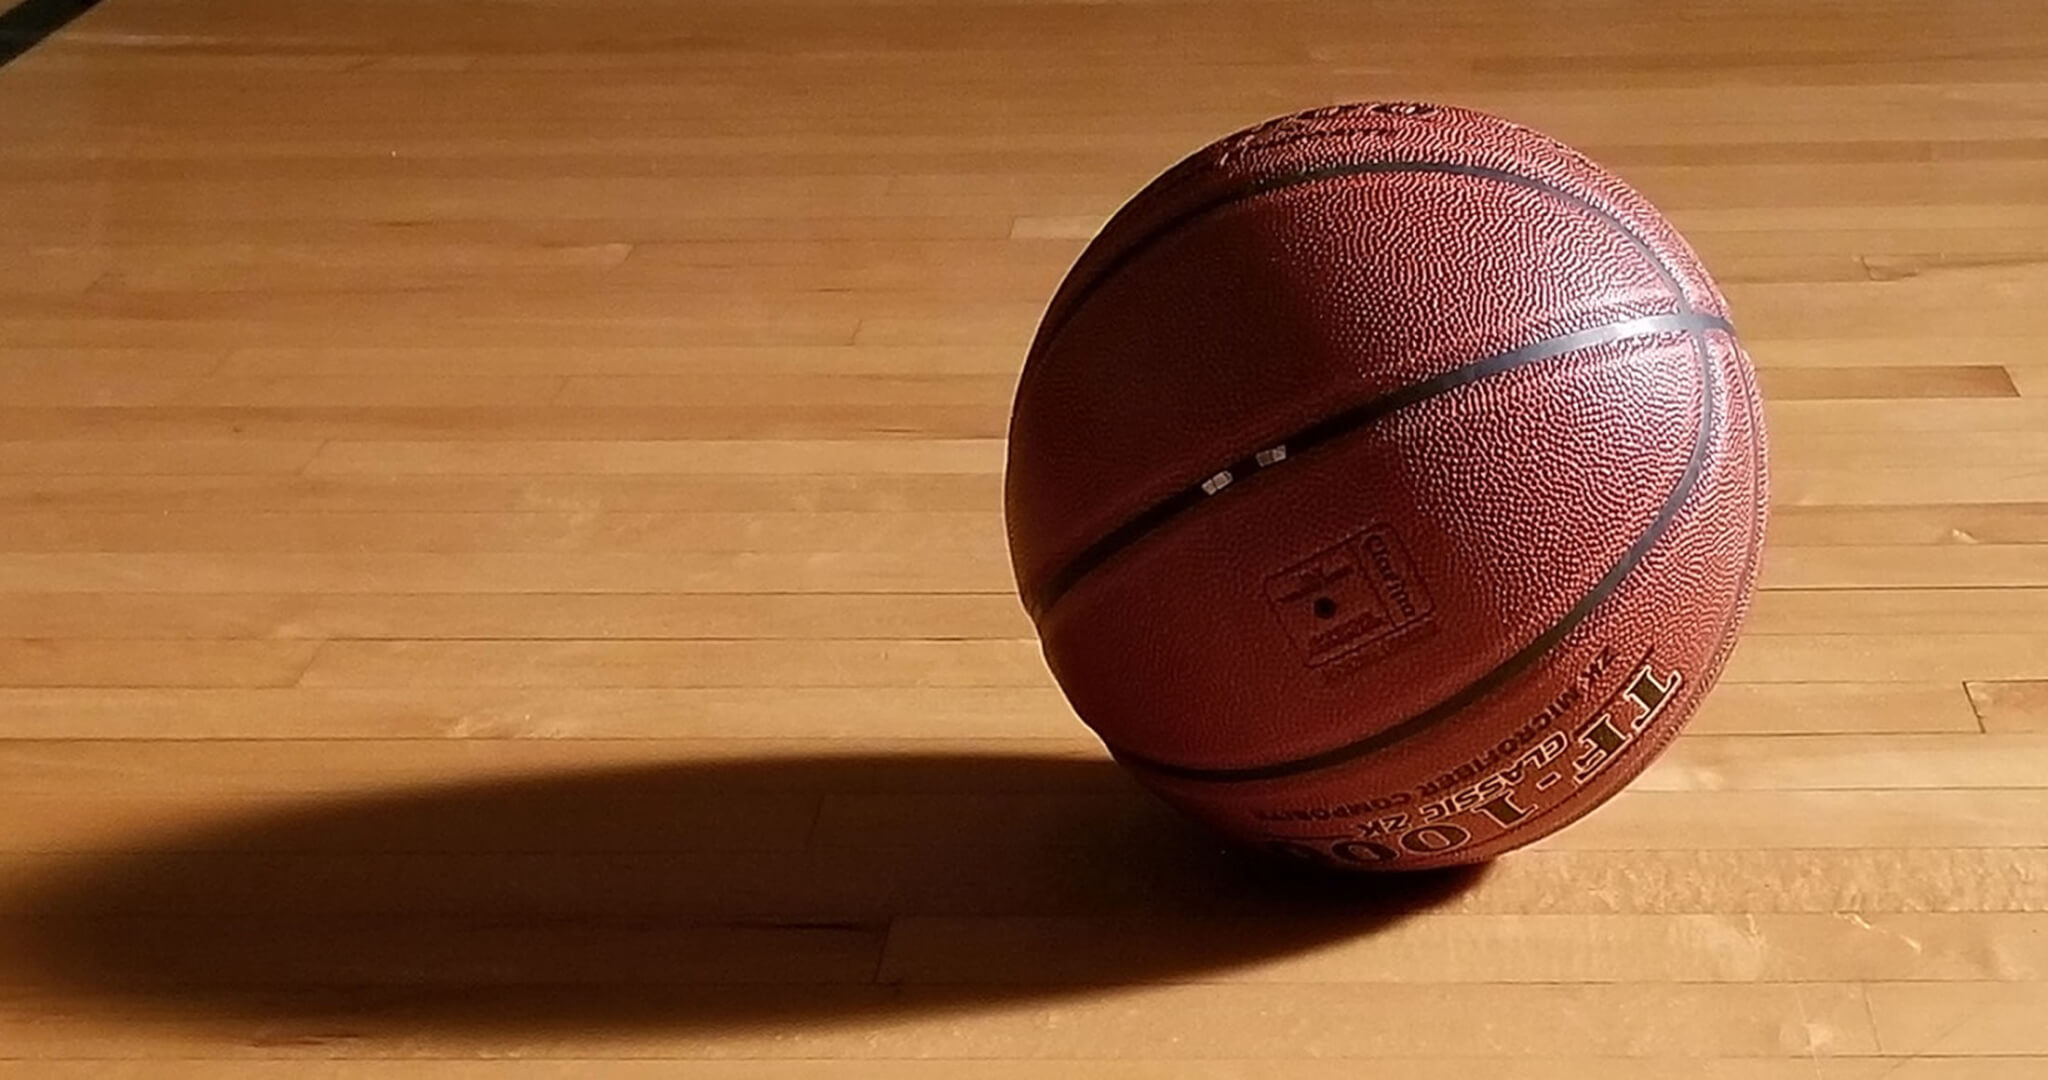 An image of a basketball on a wood floor